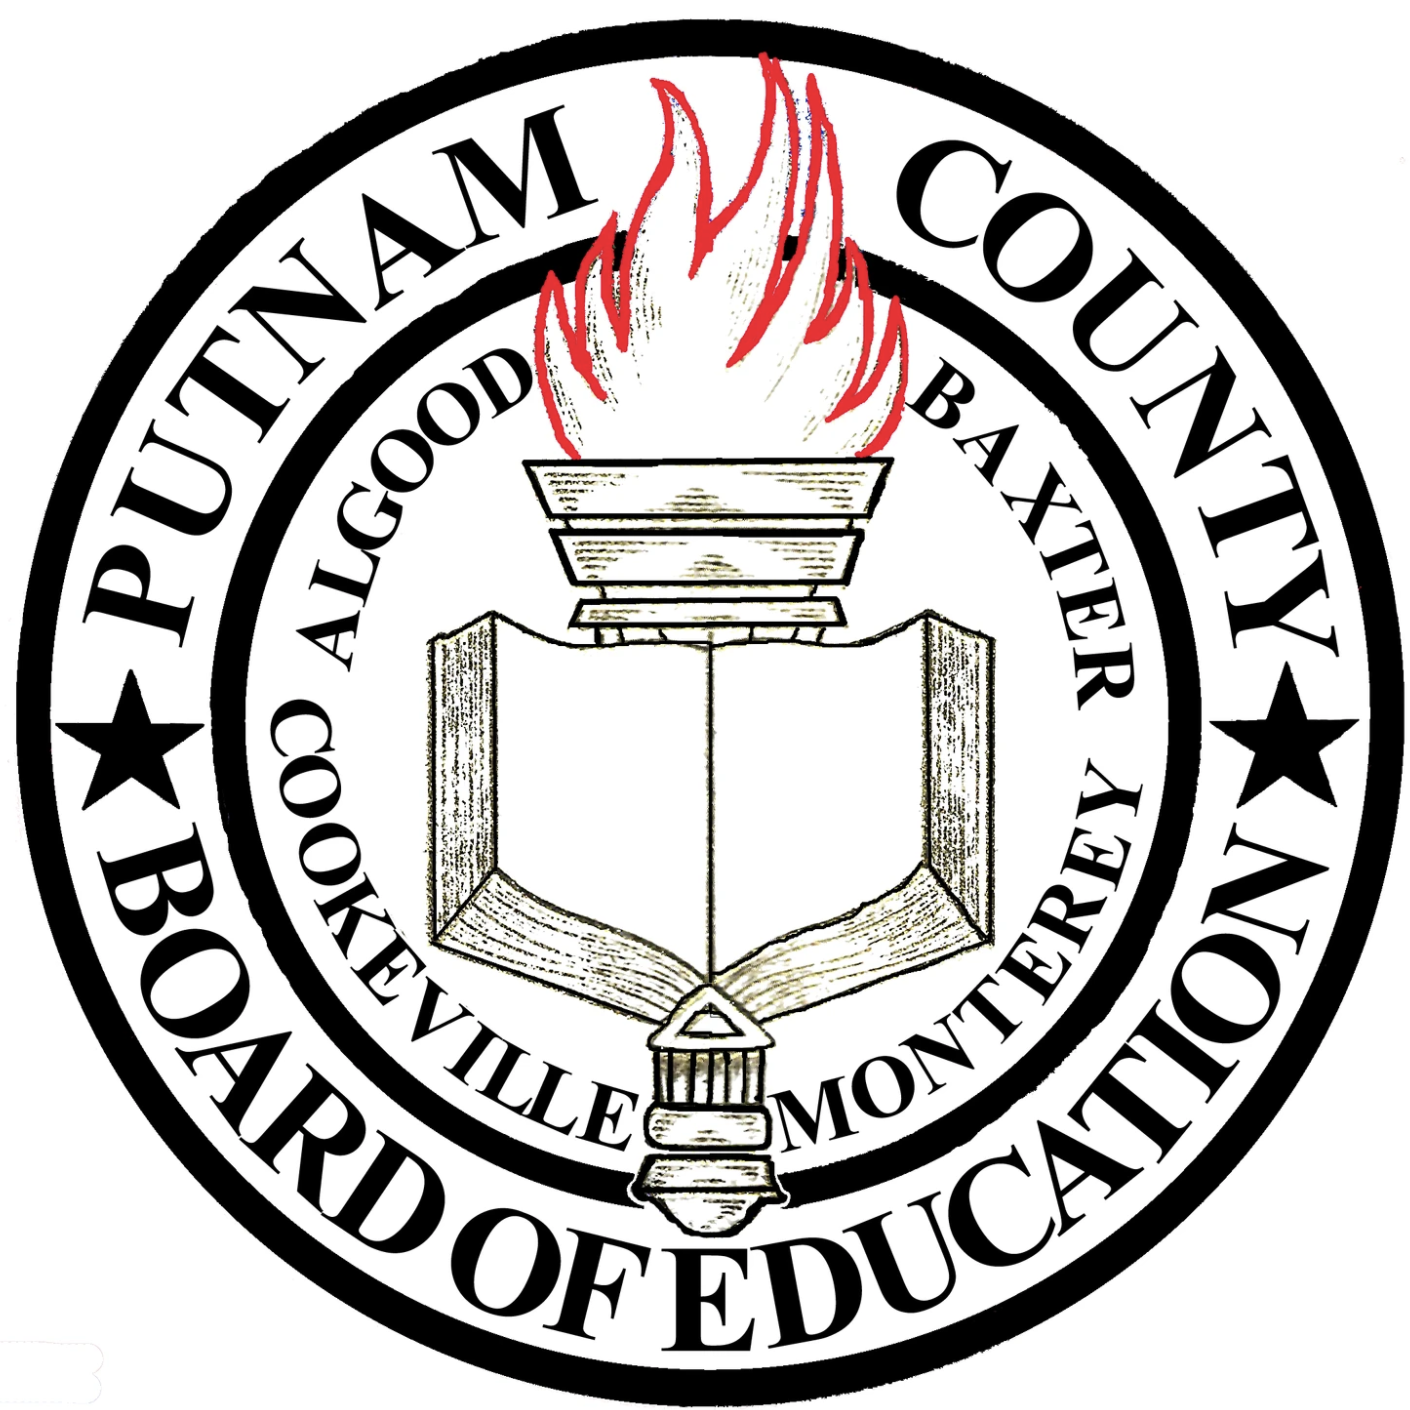 Putnam County School System Chooses Glimpse K12 eROI Platform to Measure Impact of Academic Resources And Improve Student Outcomes